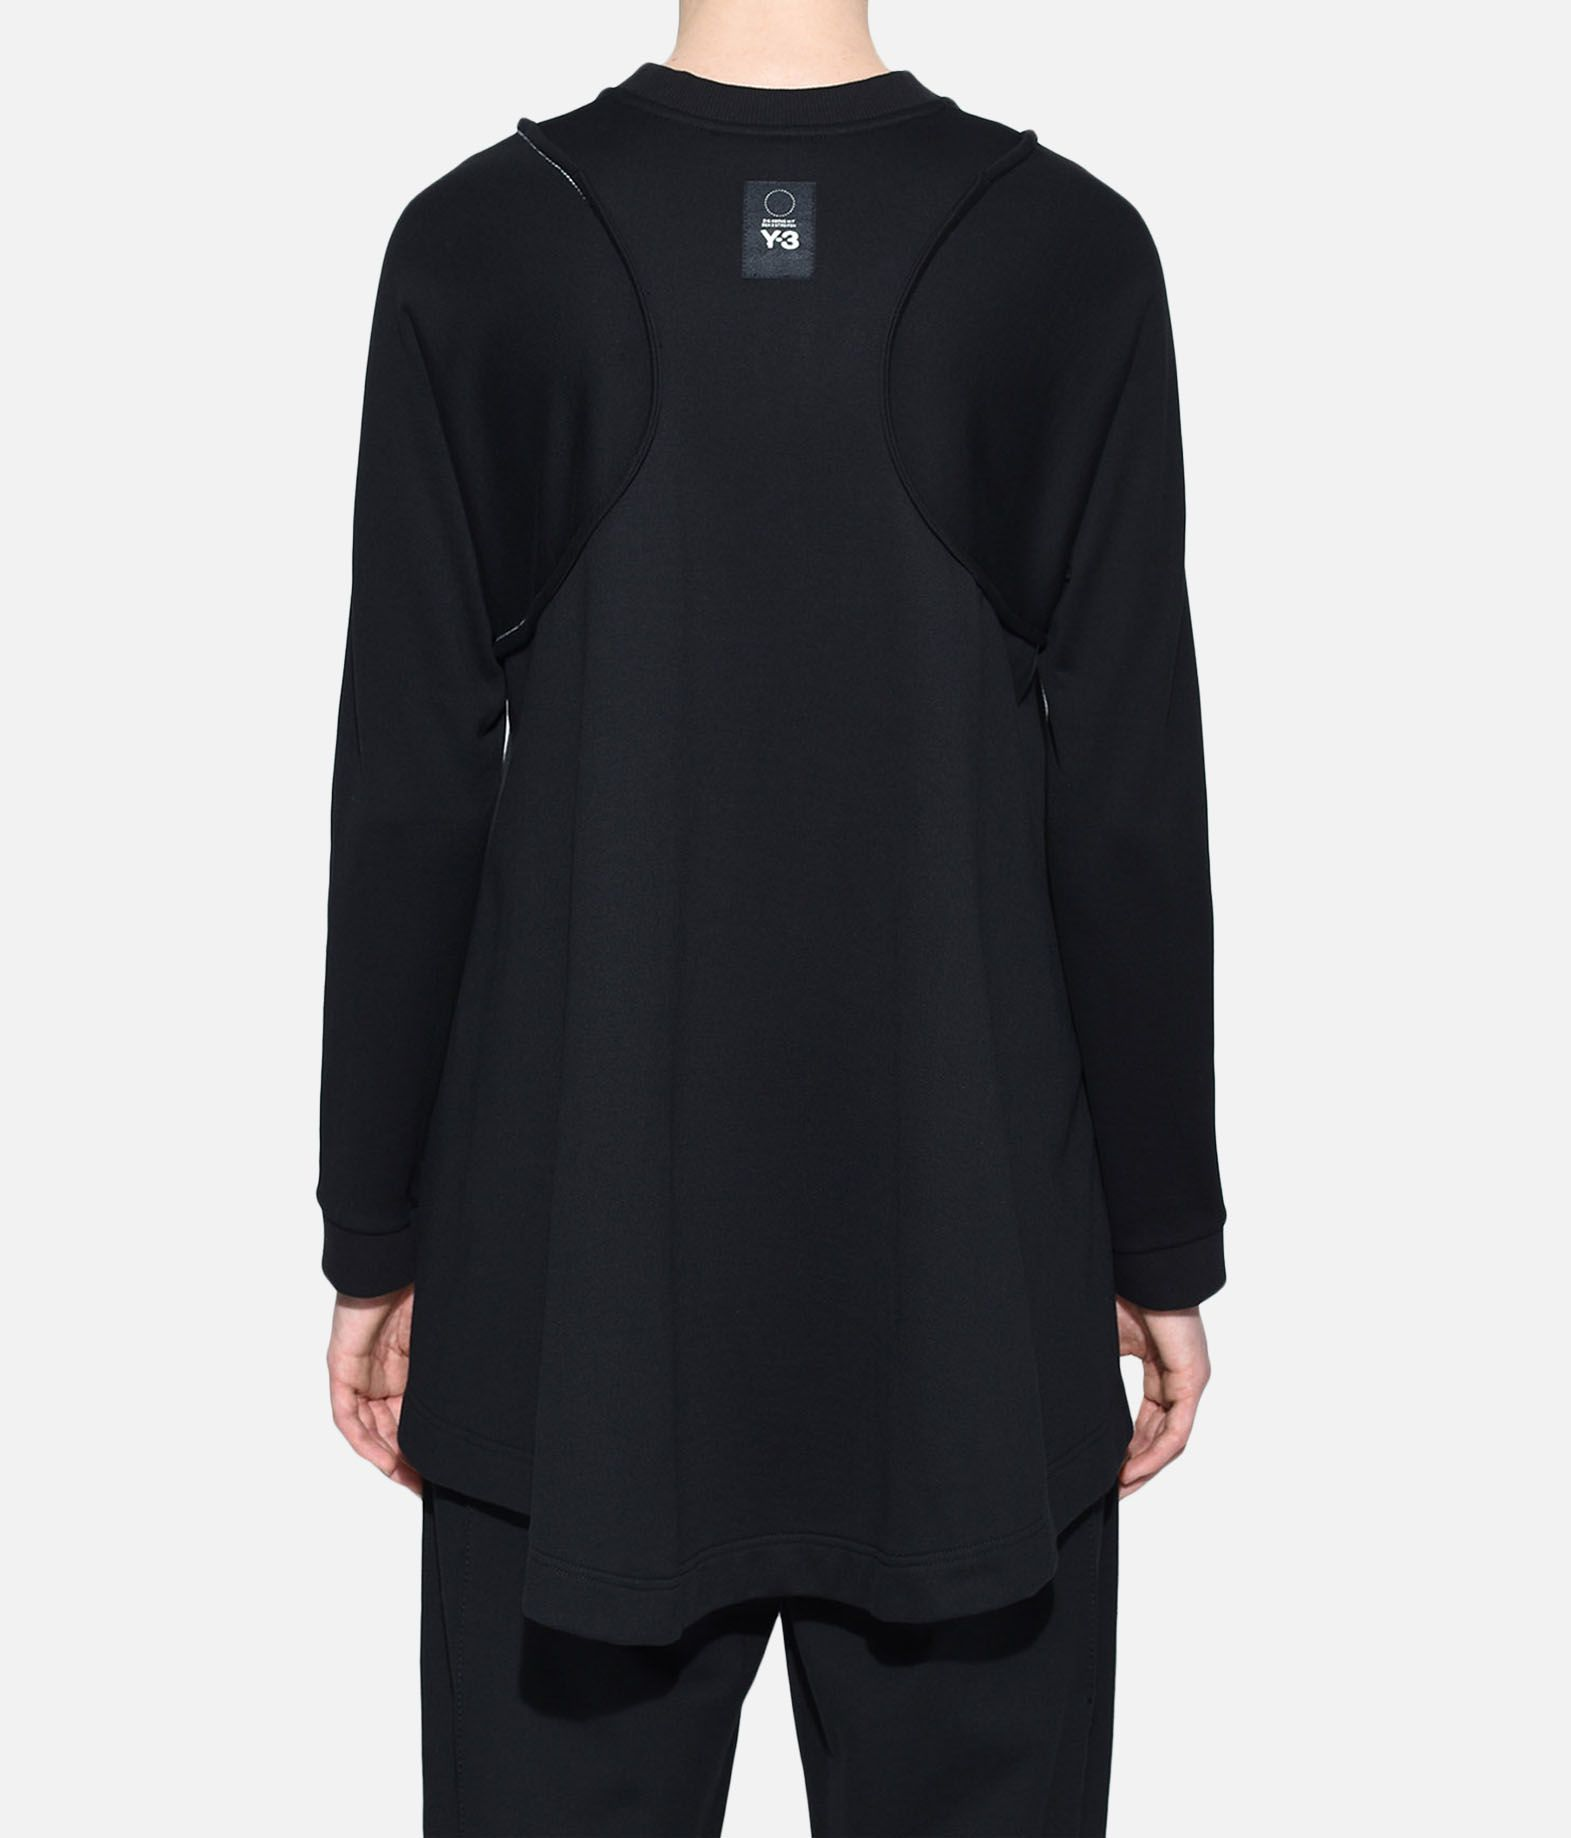 Y-3 Y-3 Sashiko Sweater Sweatshirt Woman d